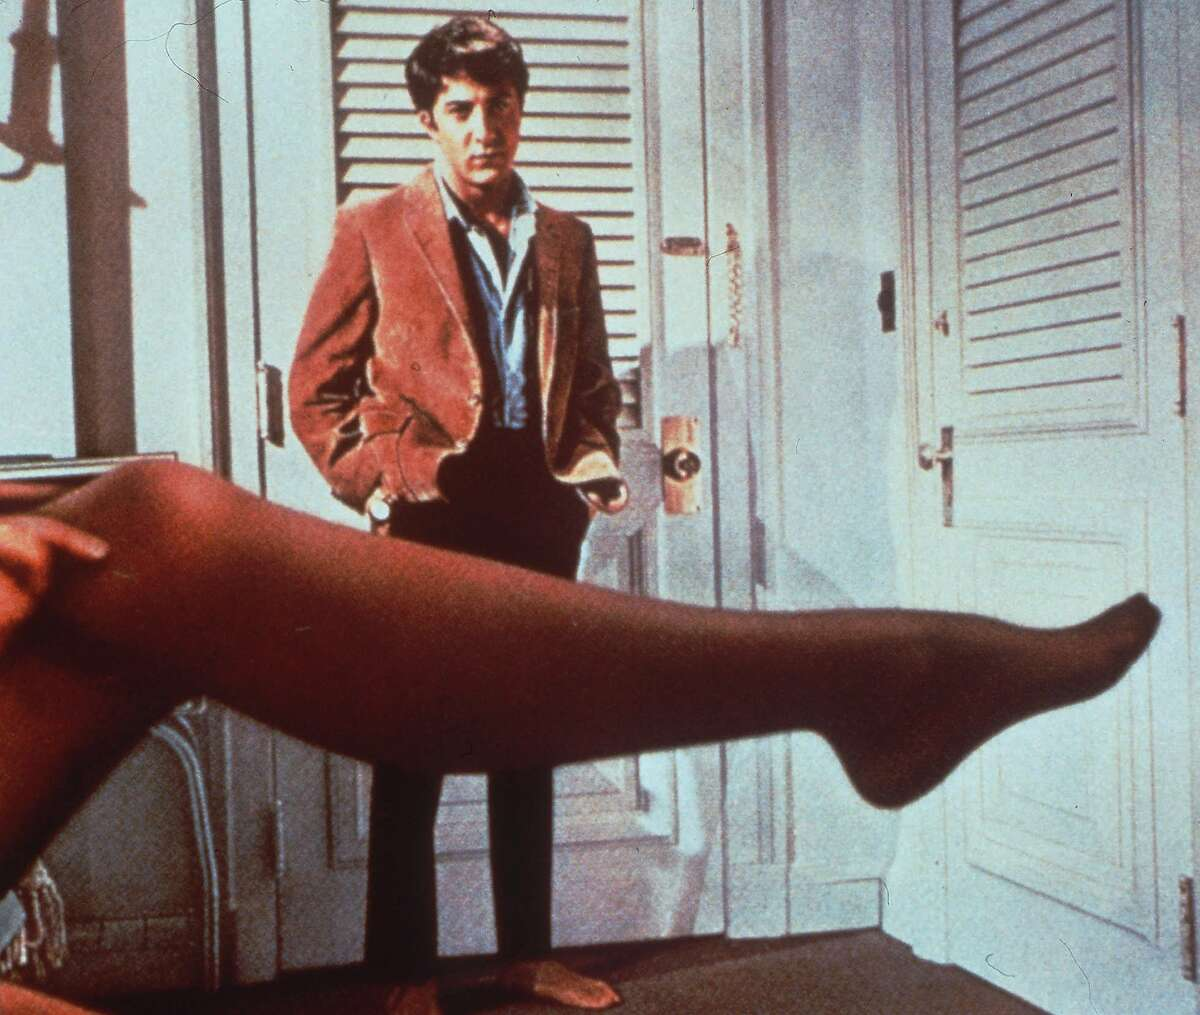 Dustin Hoffman looks at the stockinged leg of body double Linda Gray representing actress Anne Bancroft, his seductress in this scene from the 1967 film